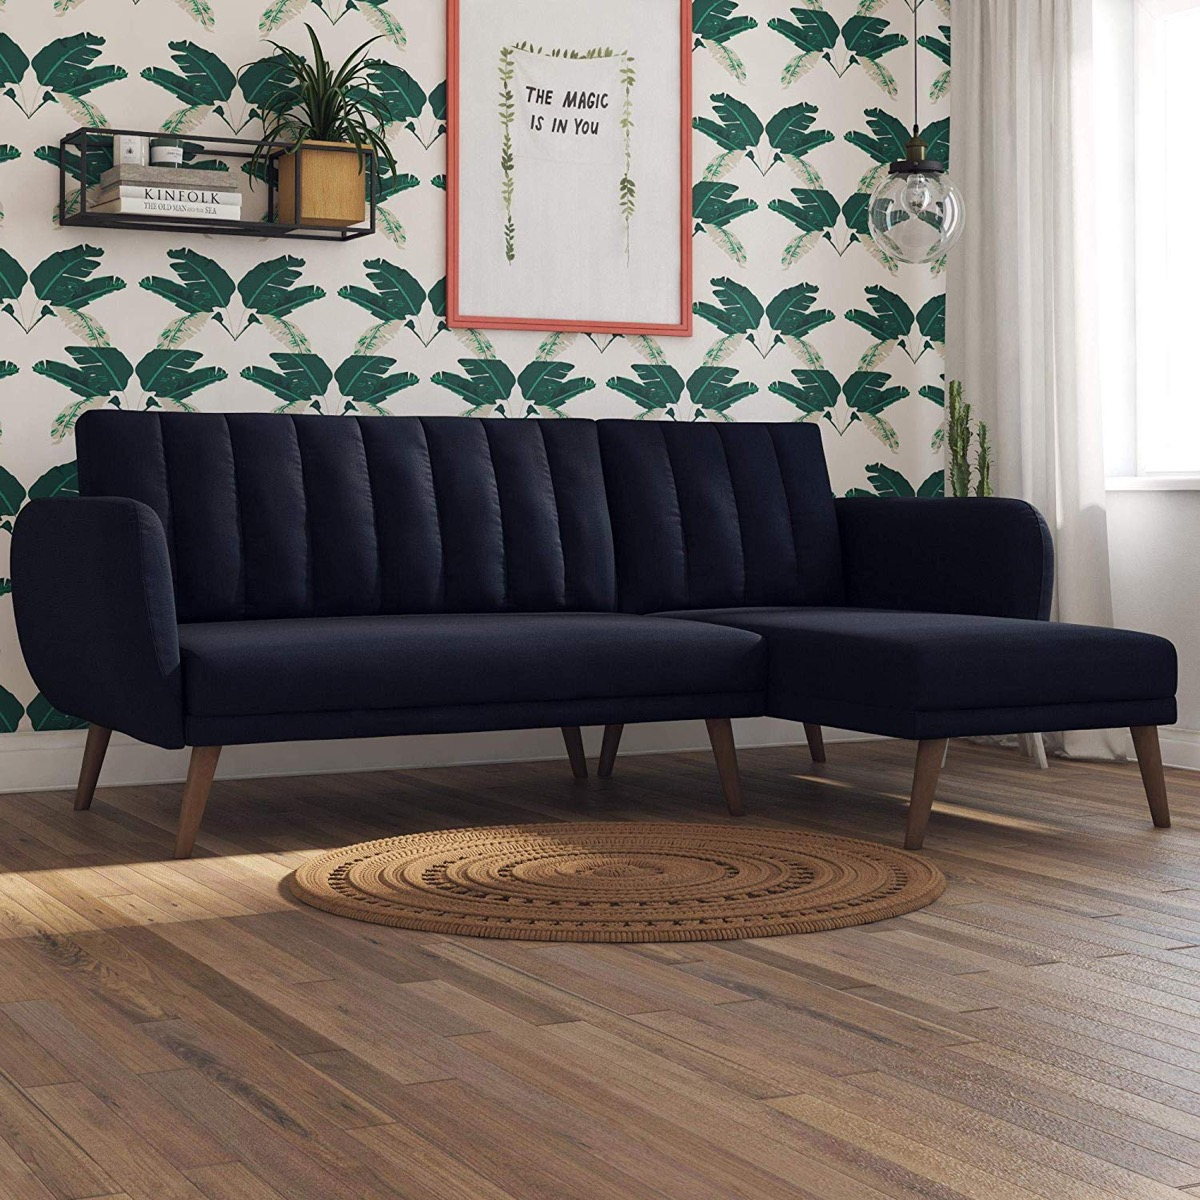 Luxurious Blue Sectional Sleeper Sofa Mid Century Modern Style Awesome Decors